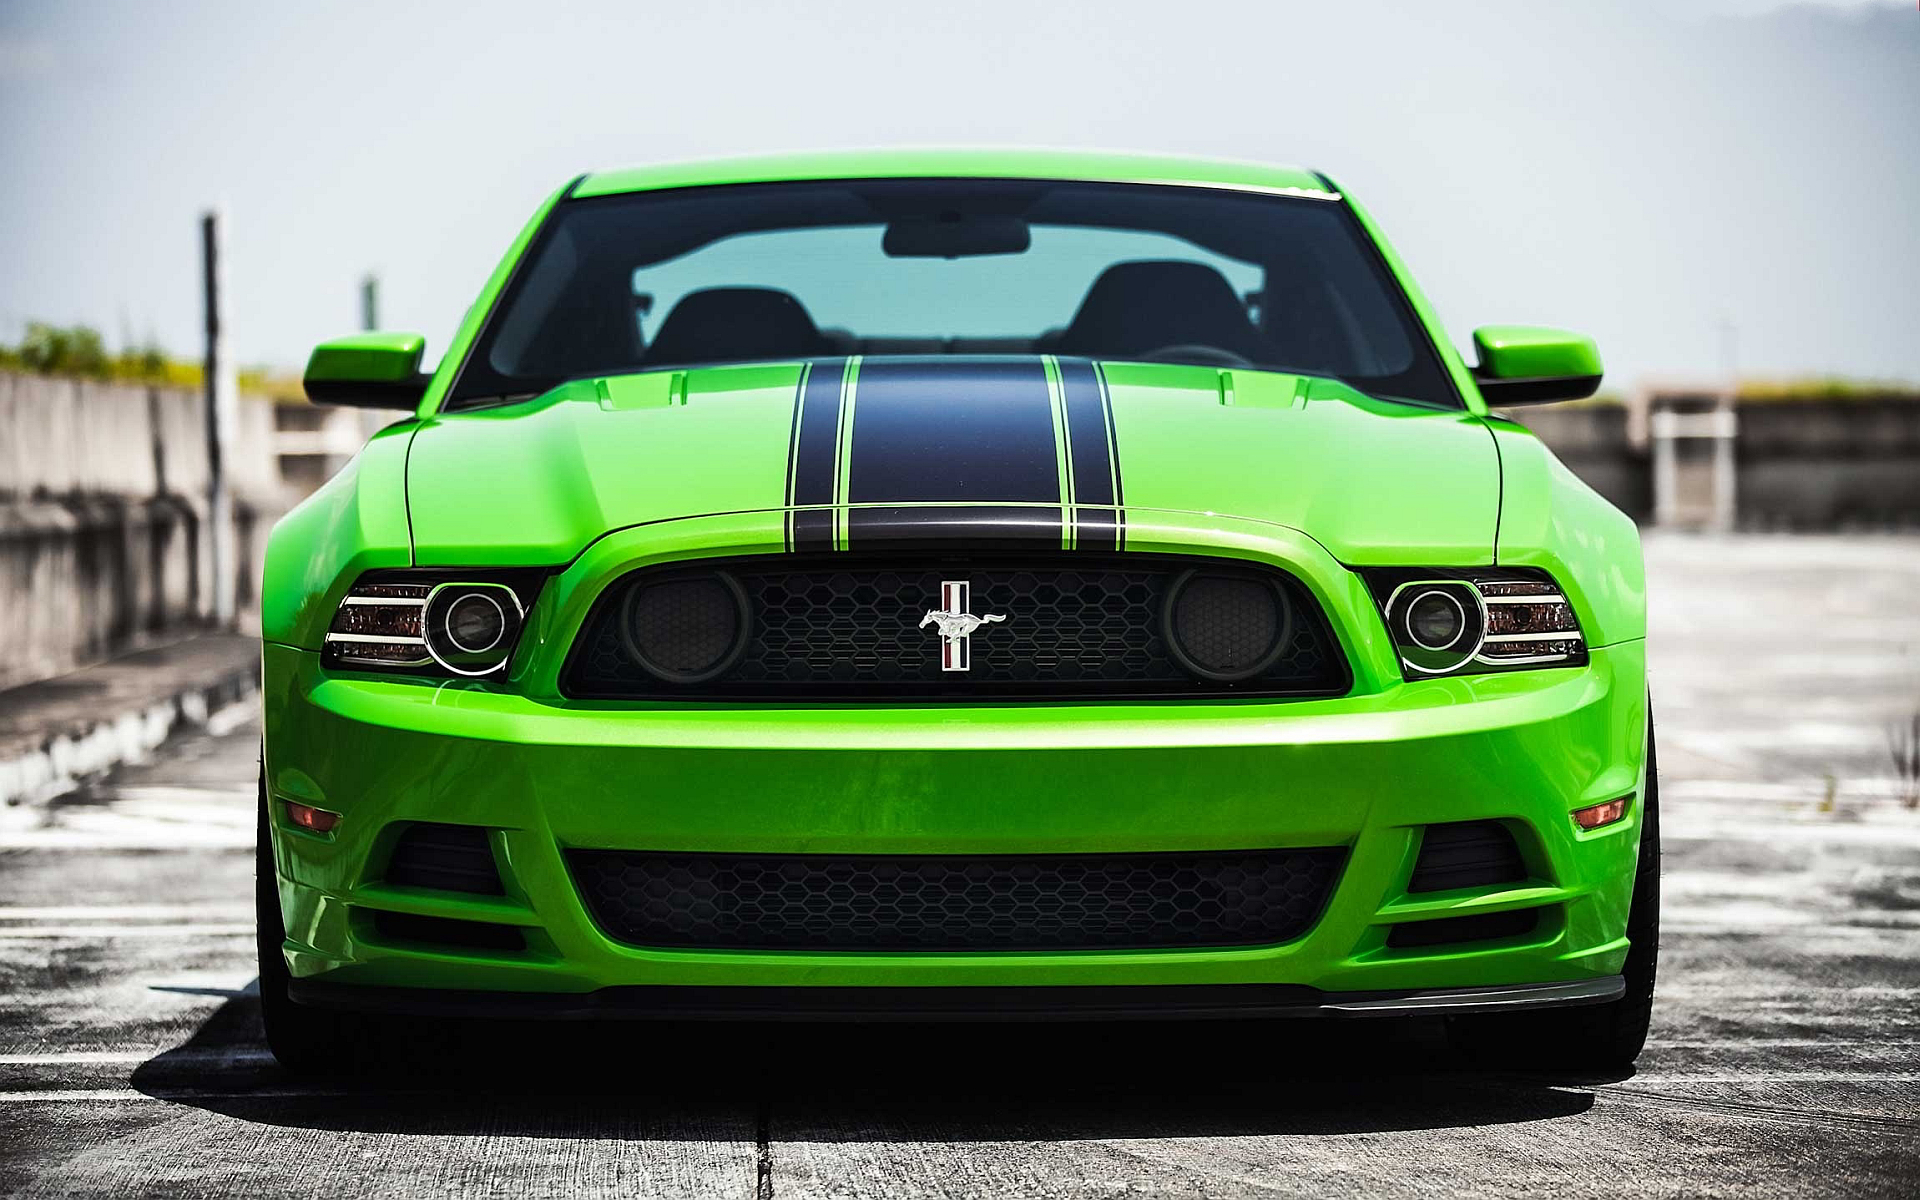 2013 Ford Mustang Boss 302, on runway, in 'Gotta Have It Green'.